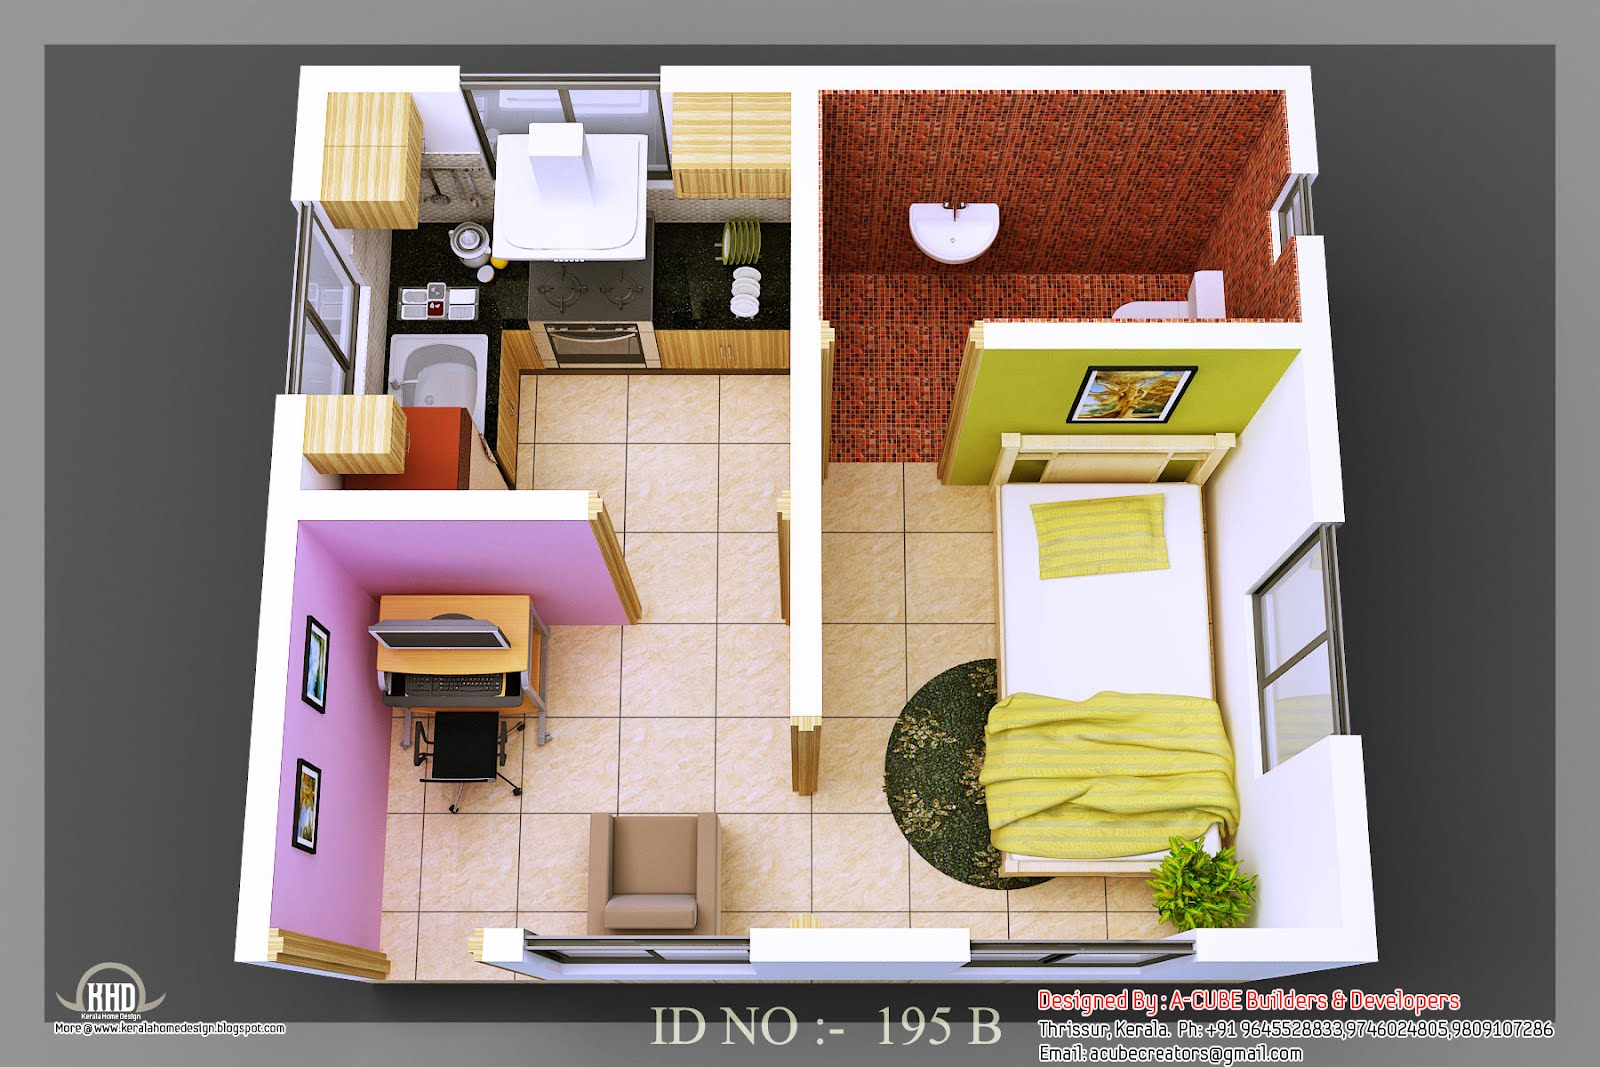 3d isometric views of small house plans kerala home design and floor plans - Small homes design ideas ...